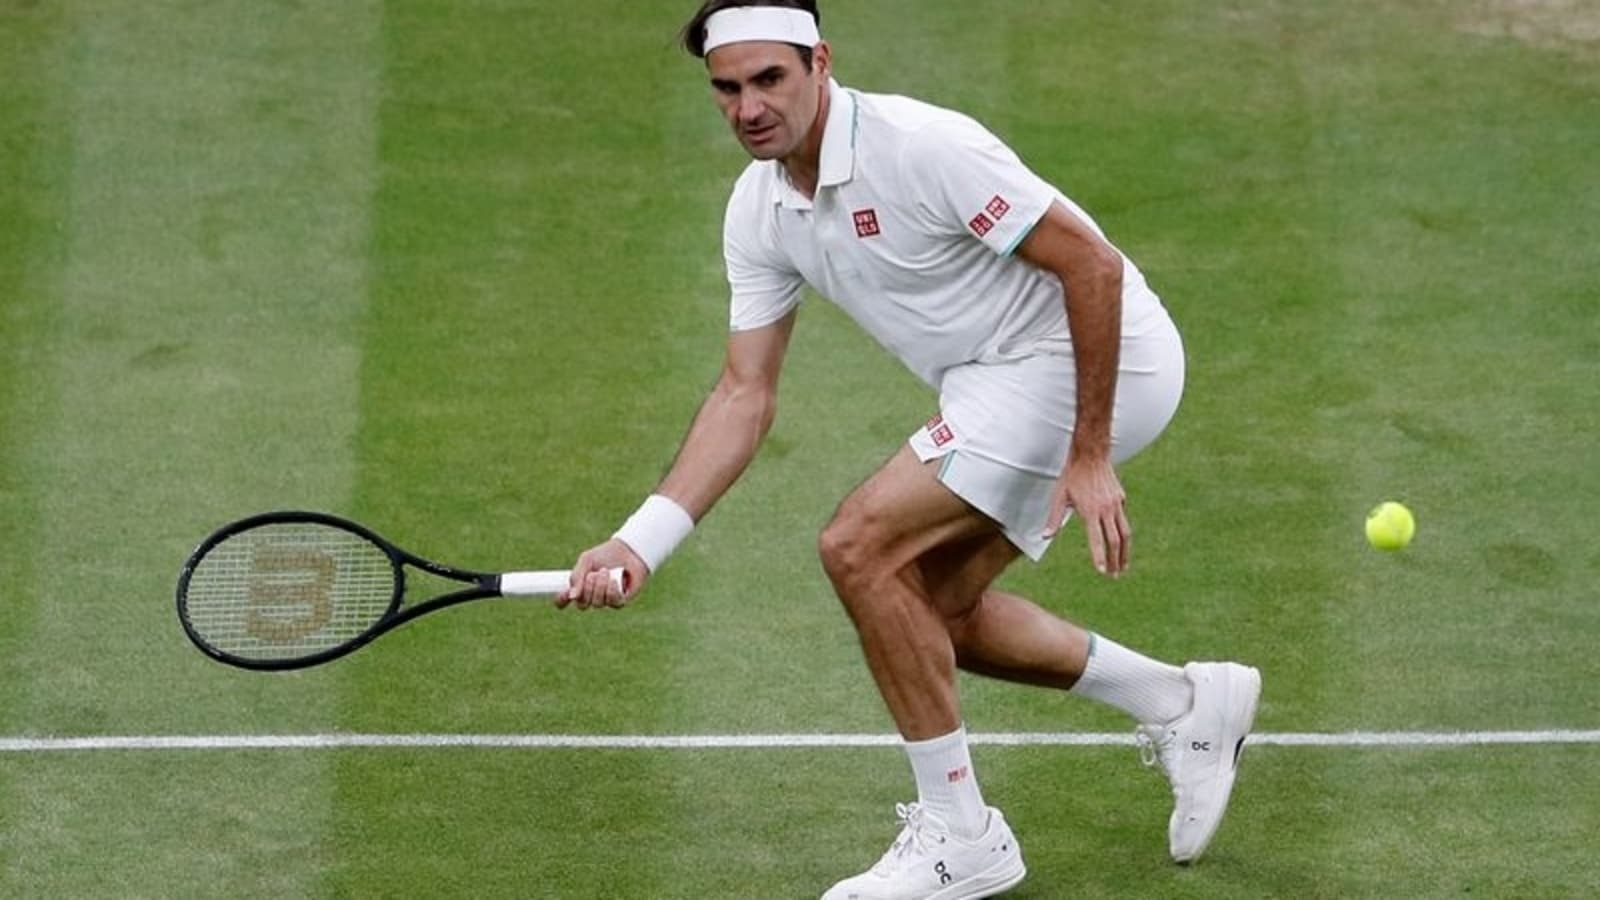 Wimbledon 2021 Day 9: Federer knocked out by Hurkacz in straight; Djokovic  cruises into semifinals | Tennis News - Hindustan Times